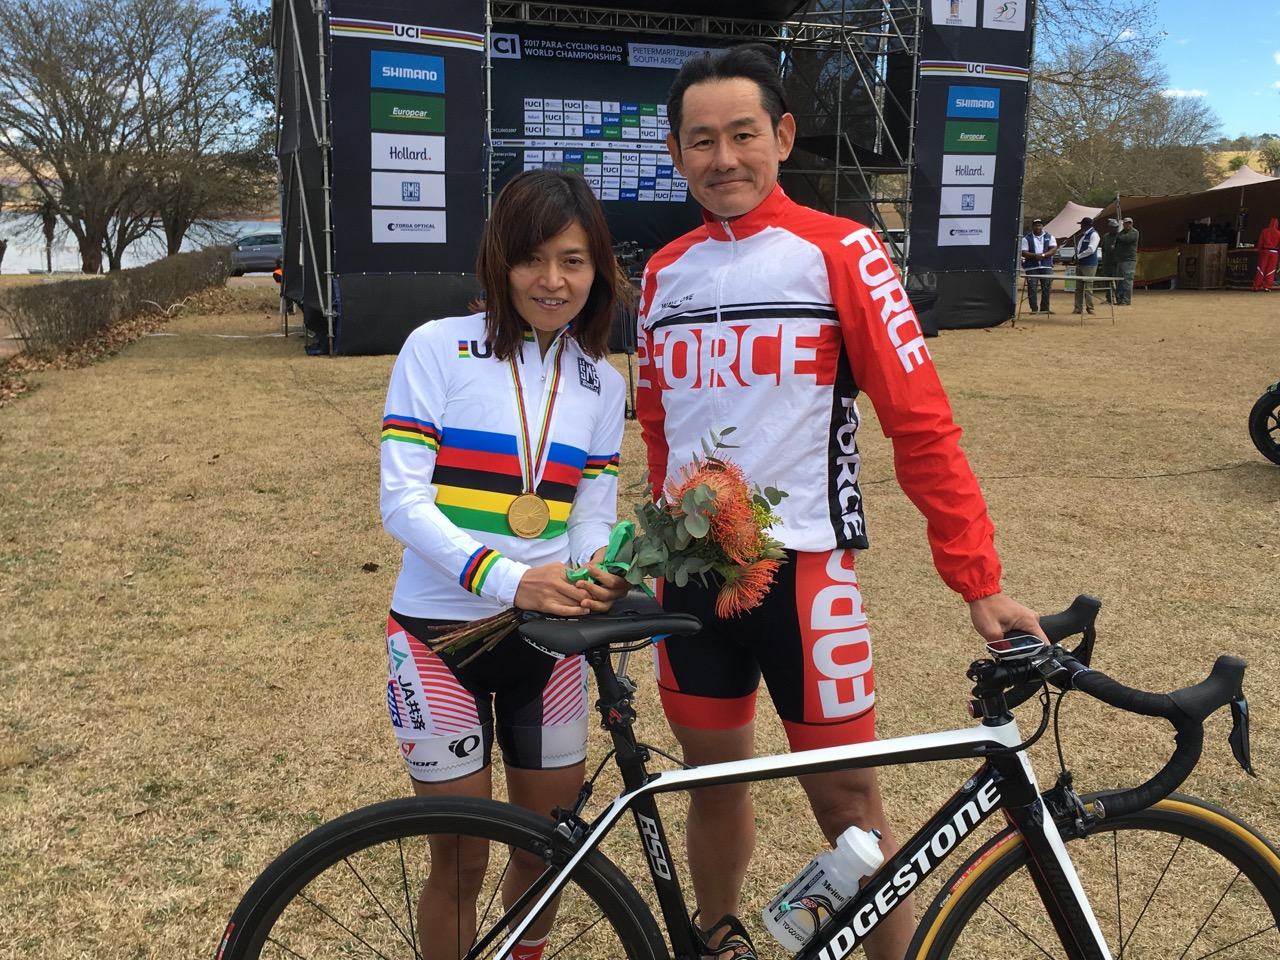 The Japanese Cycling Federation earned their first gold medal of the week when Keiko Noguchi won the Women's C3 Time Trial in a time of 26:17.23 along the 15.5km distance during the Time Trial on Day 2 of the 2017 UCI Para-cycling Road World Championships held at Midmar Dam Howick, South Africa, on Friday 1 September 2017. Photo credit: Mylene Paynter